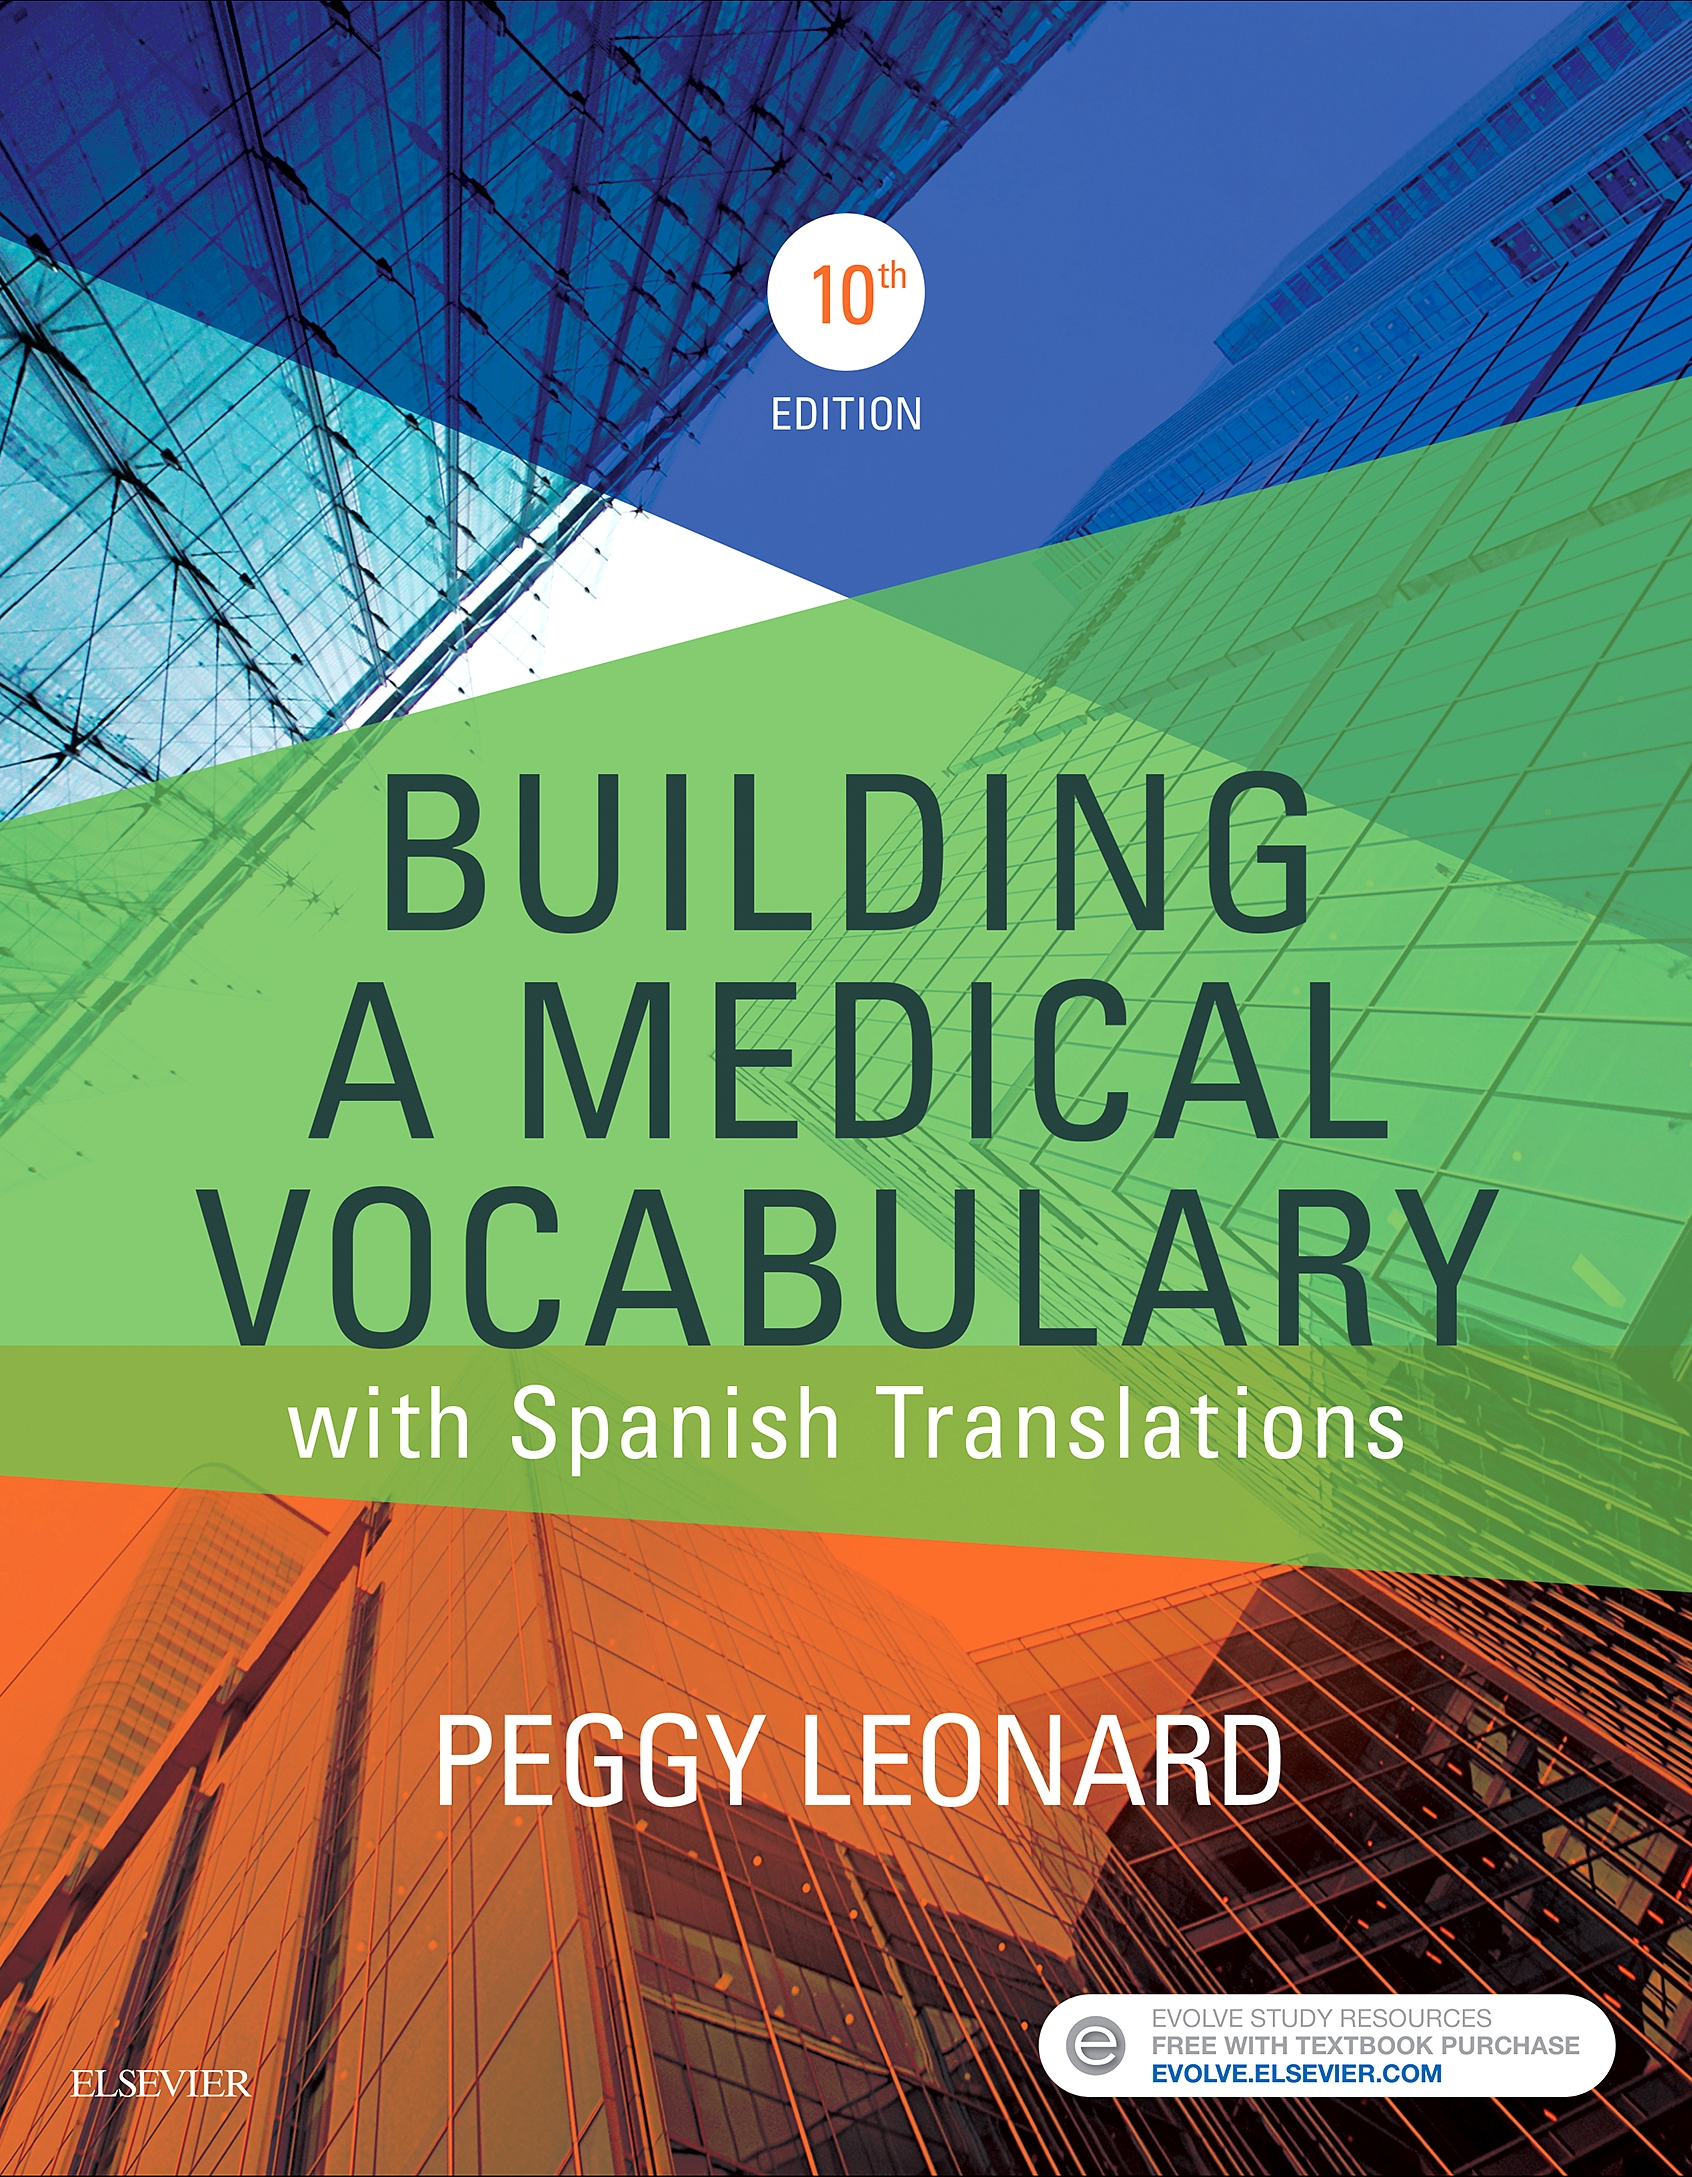 Evolve Resources for Building a Medical Vocabulary, 10th Edition